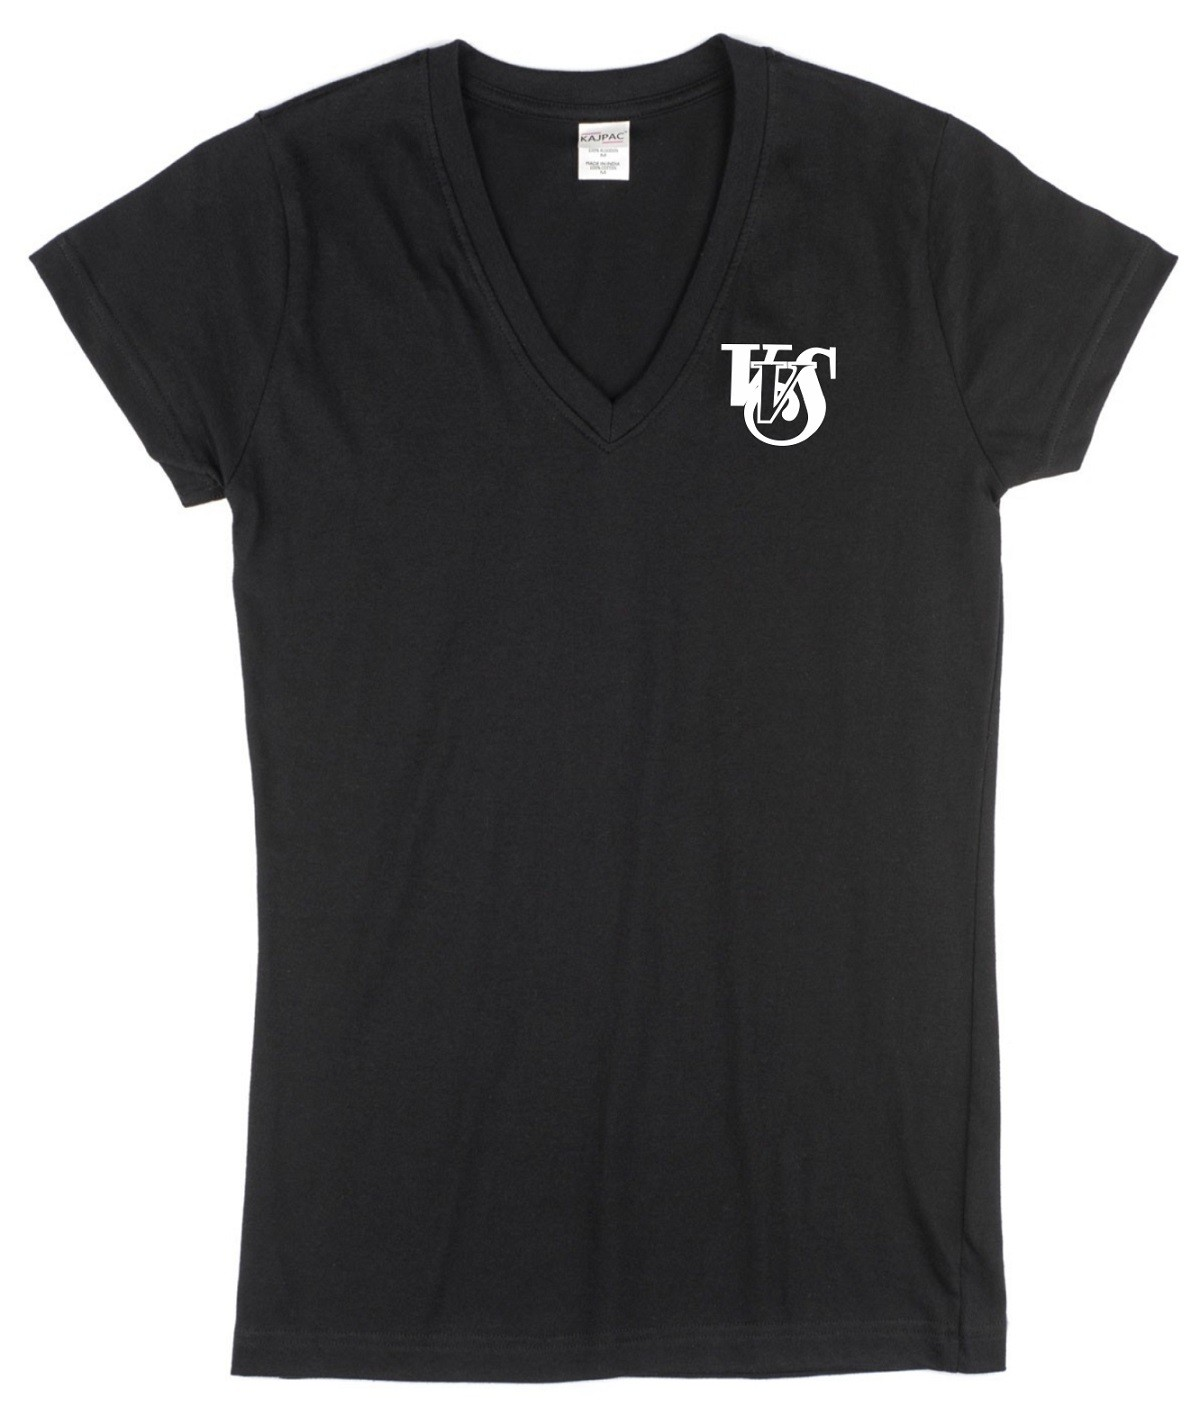 VVS Ladies Moisture Wicking V Neck T-Shirt